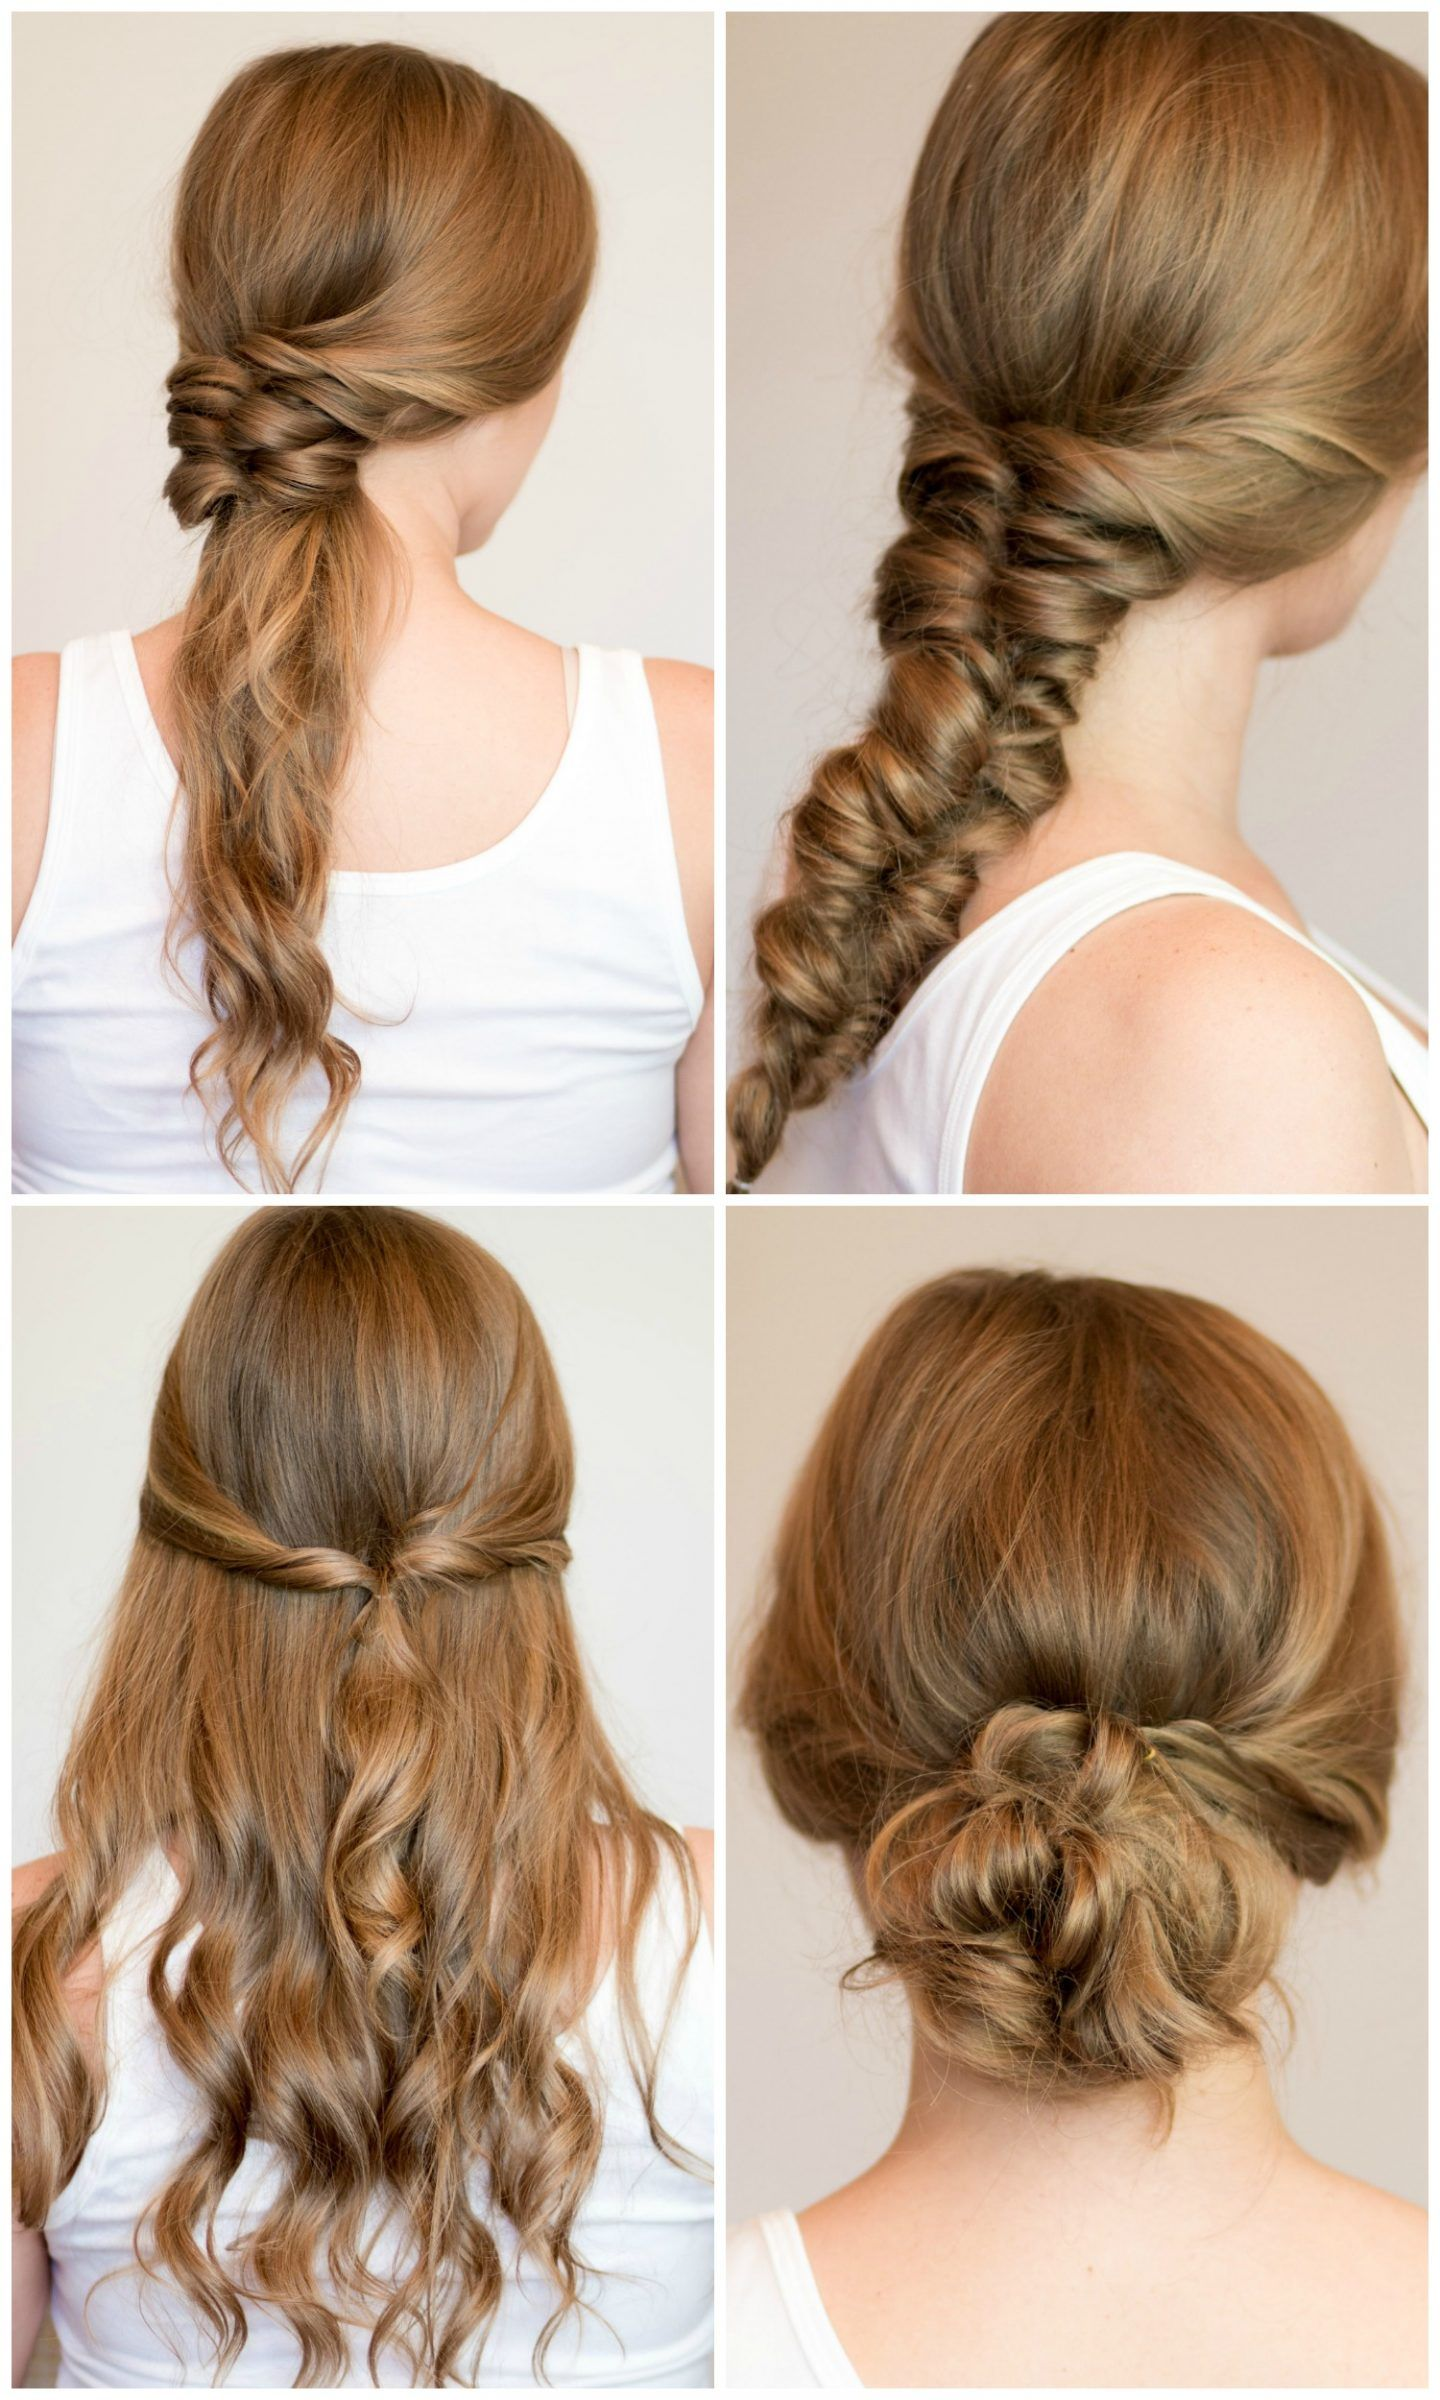 Hairstyles For Long Hair Stunning Easy Heatless Hair Styles For Long Hair  Heatless Hairstyles And